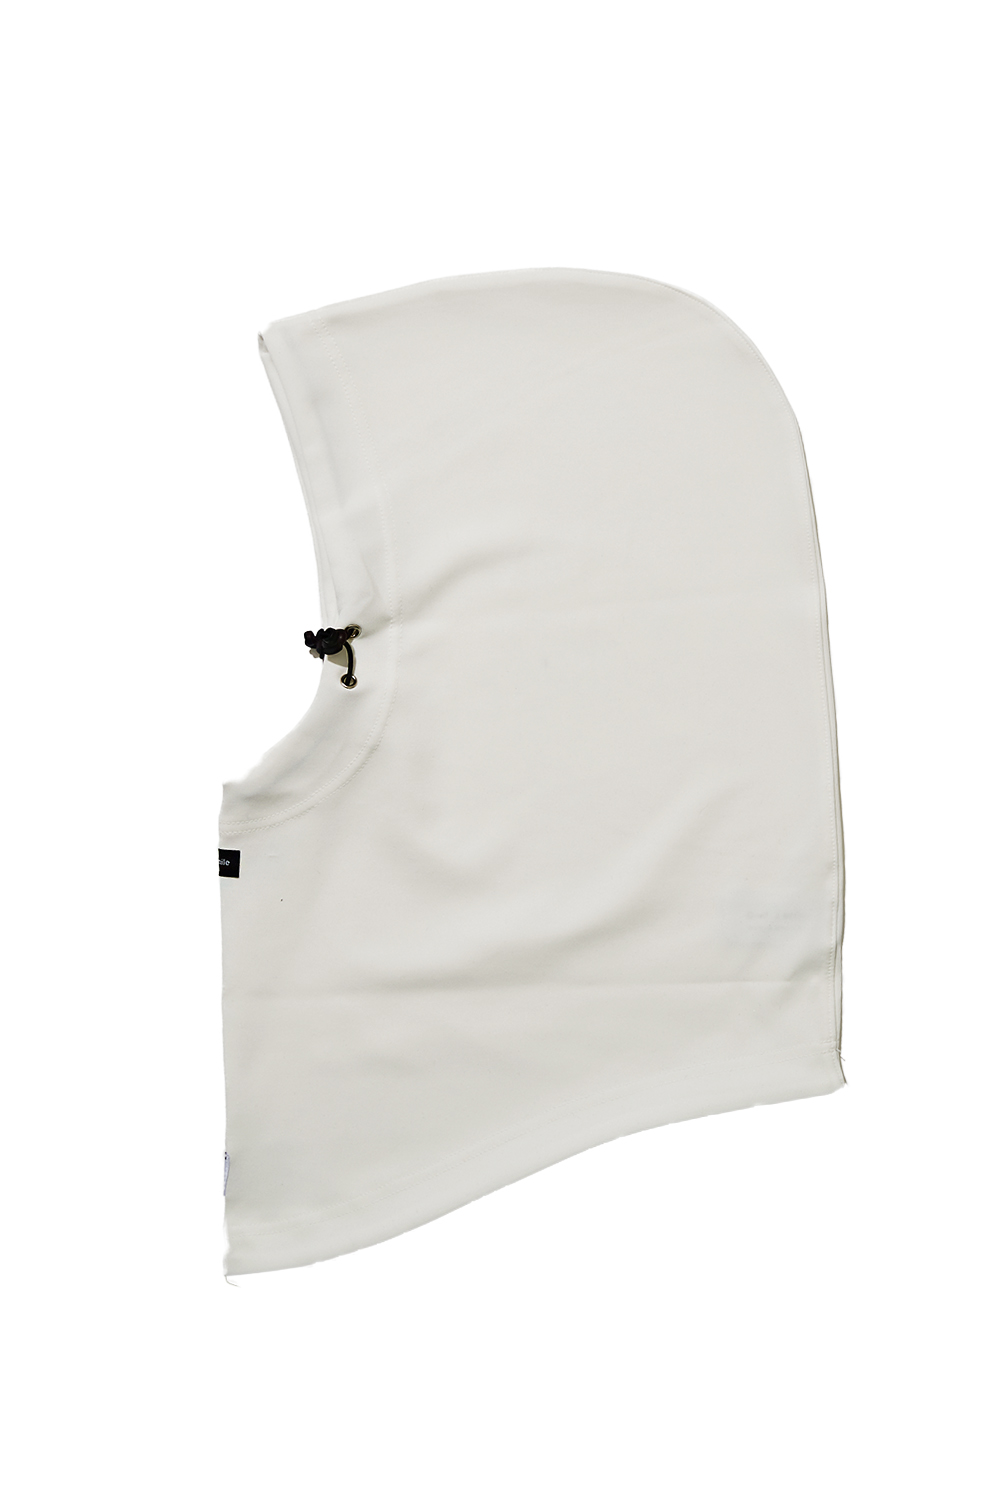 HOOD WARMER / SPANPITCH | WHITE